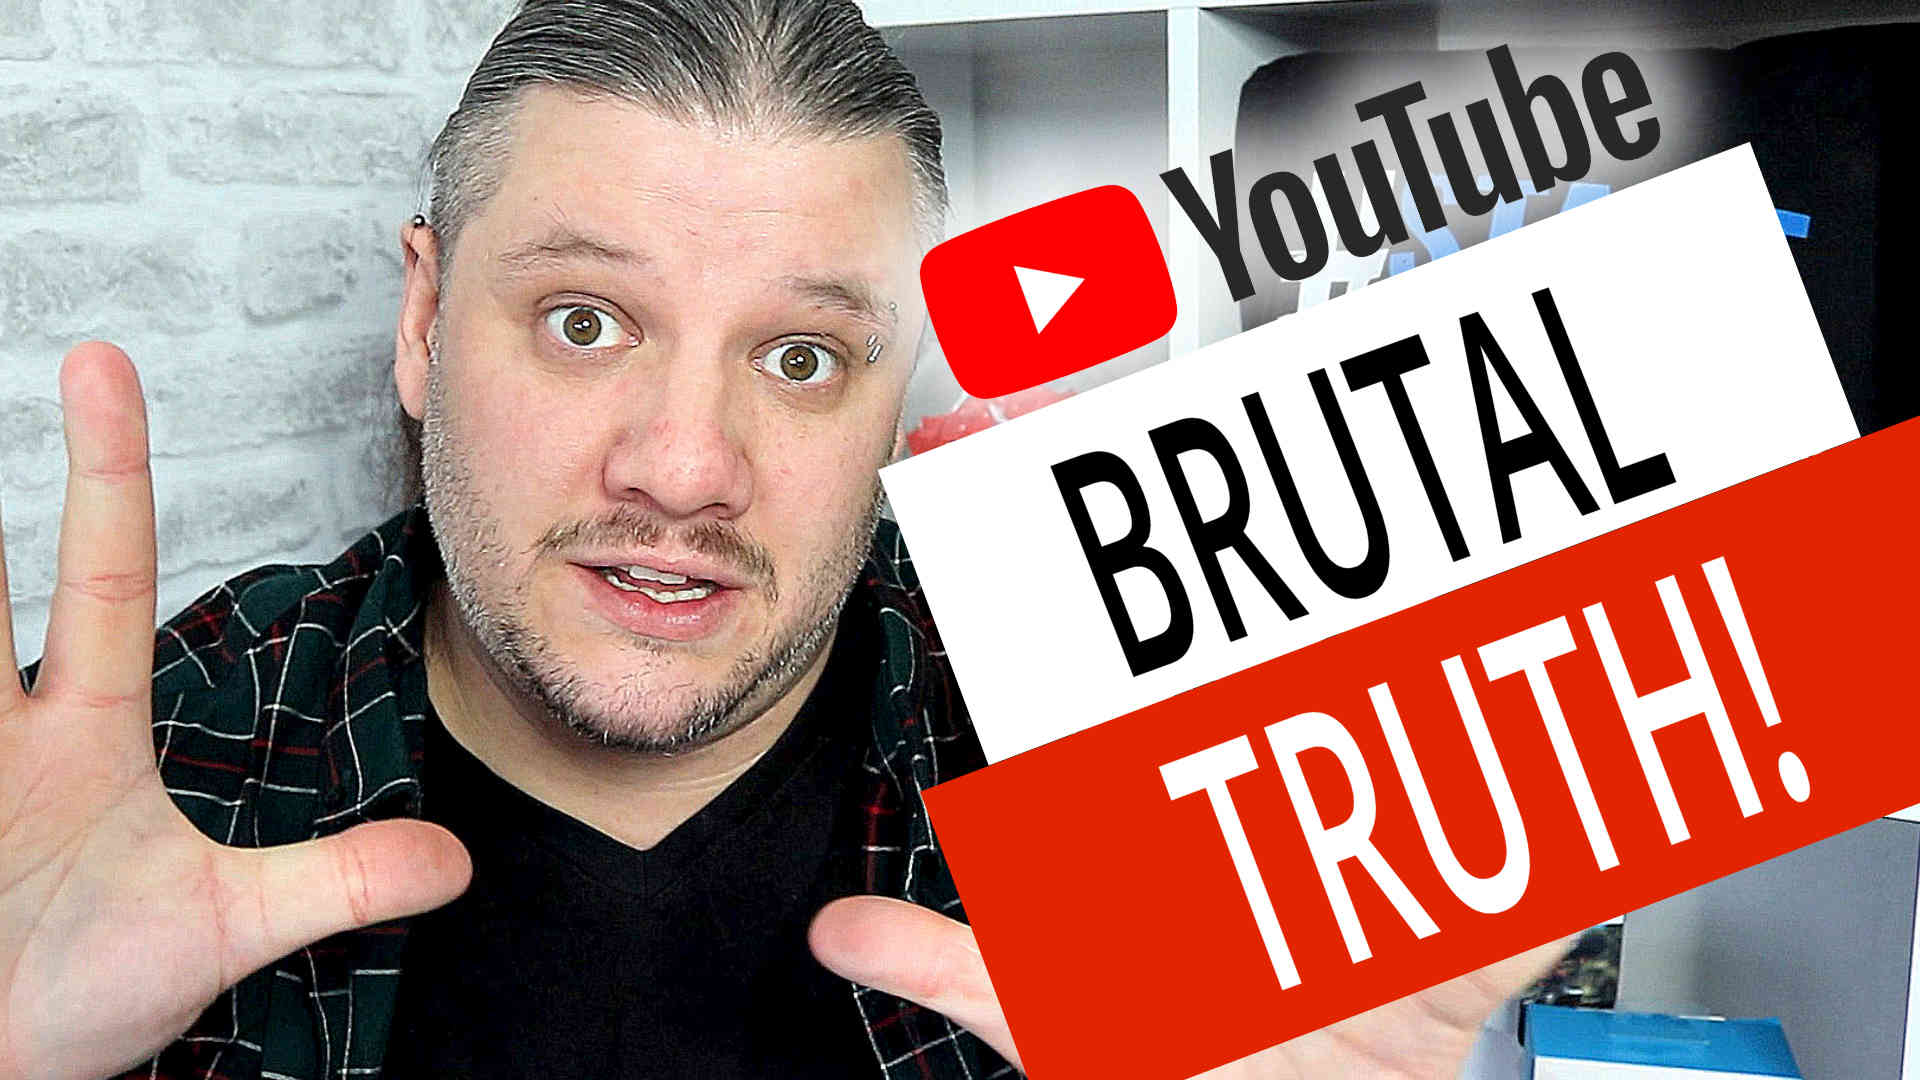 The BRUTAL Truth About YouTube (RANT), alan spicer,alanspicer,youtube rant,youtube rant 2020,the truth about youtube,youtube is hard,youtube is hard work,youtuber,truth about being a youtuber,the scary truth about being a youtuber,small youtubers channel,small youtubers watch this,small youtubers support,small youtubers,grow on youtube,grow on youtube 2020,rant,rant about youtube,youtuber rant,youtuber ranting,ranting